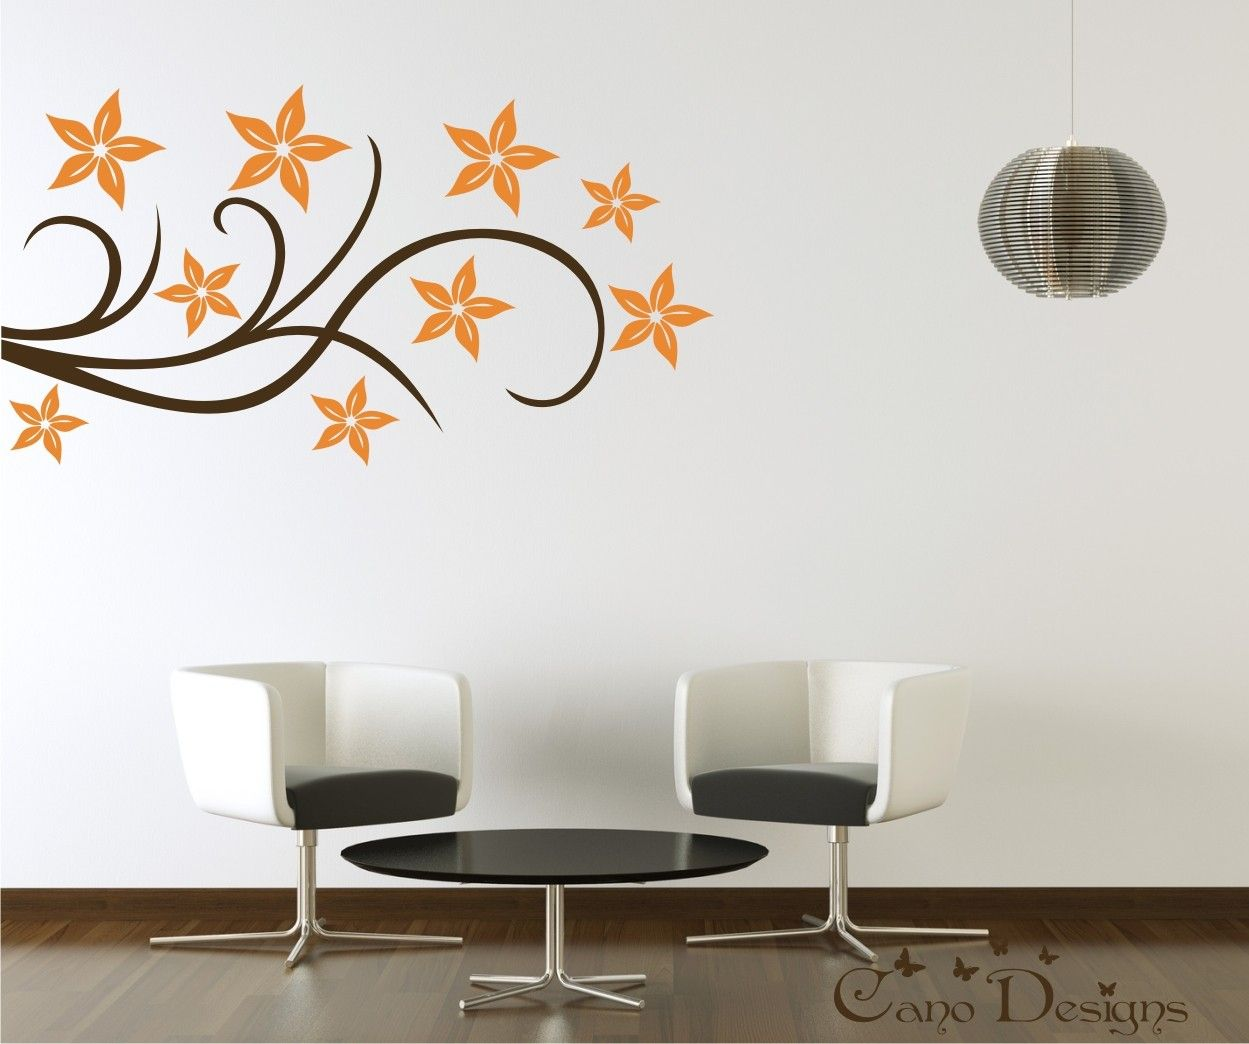 Stickers For Wall Decor stylish modern wall decor stickers art decals | vinyl wall